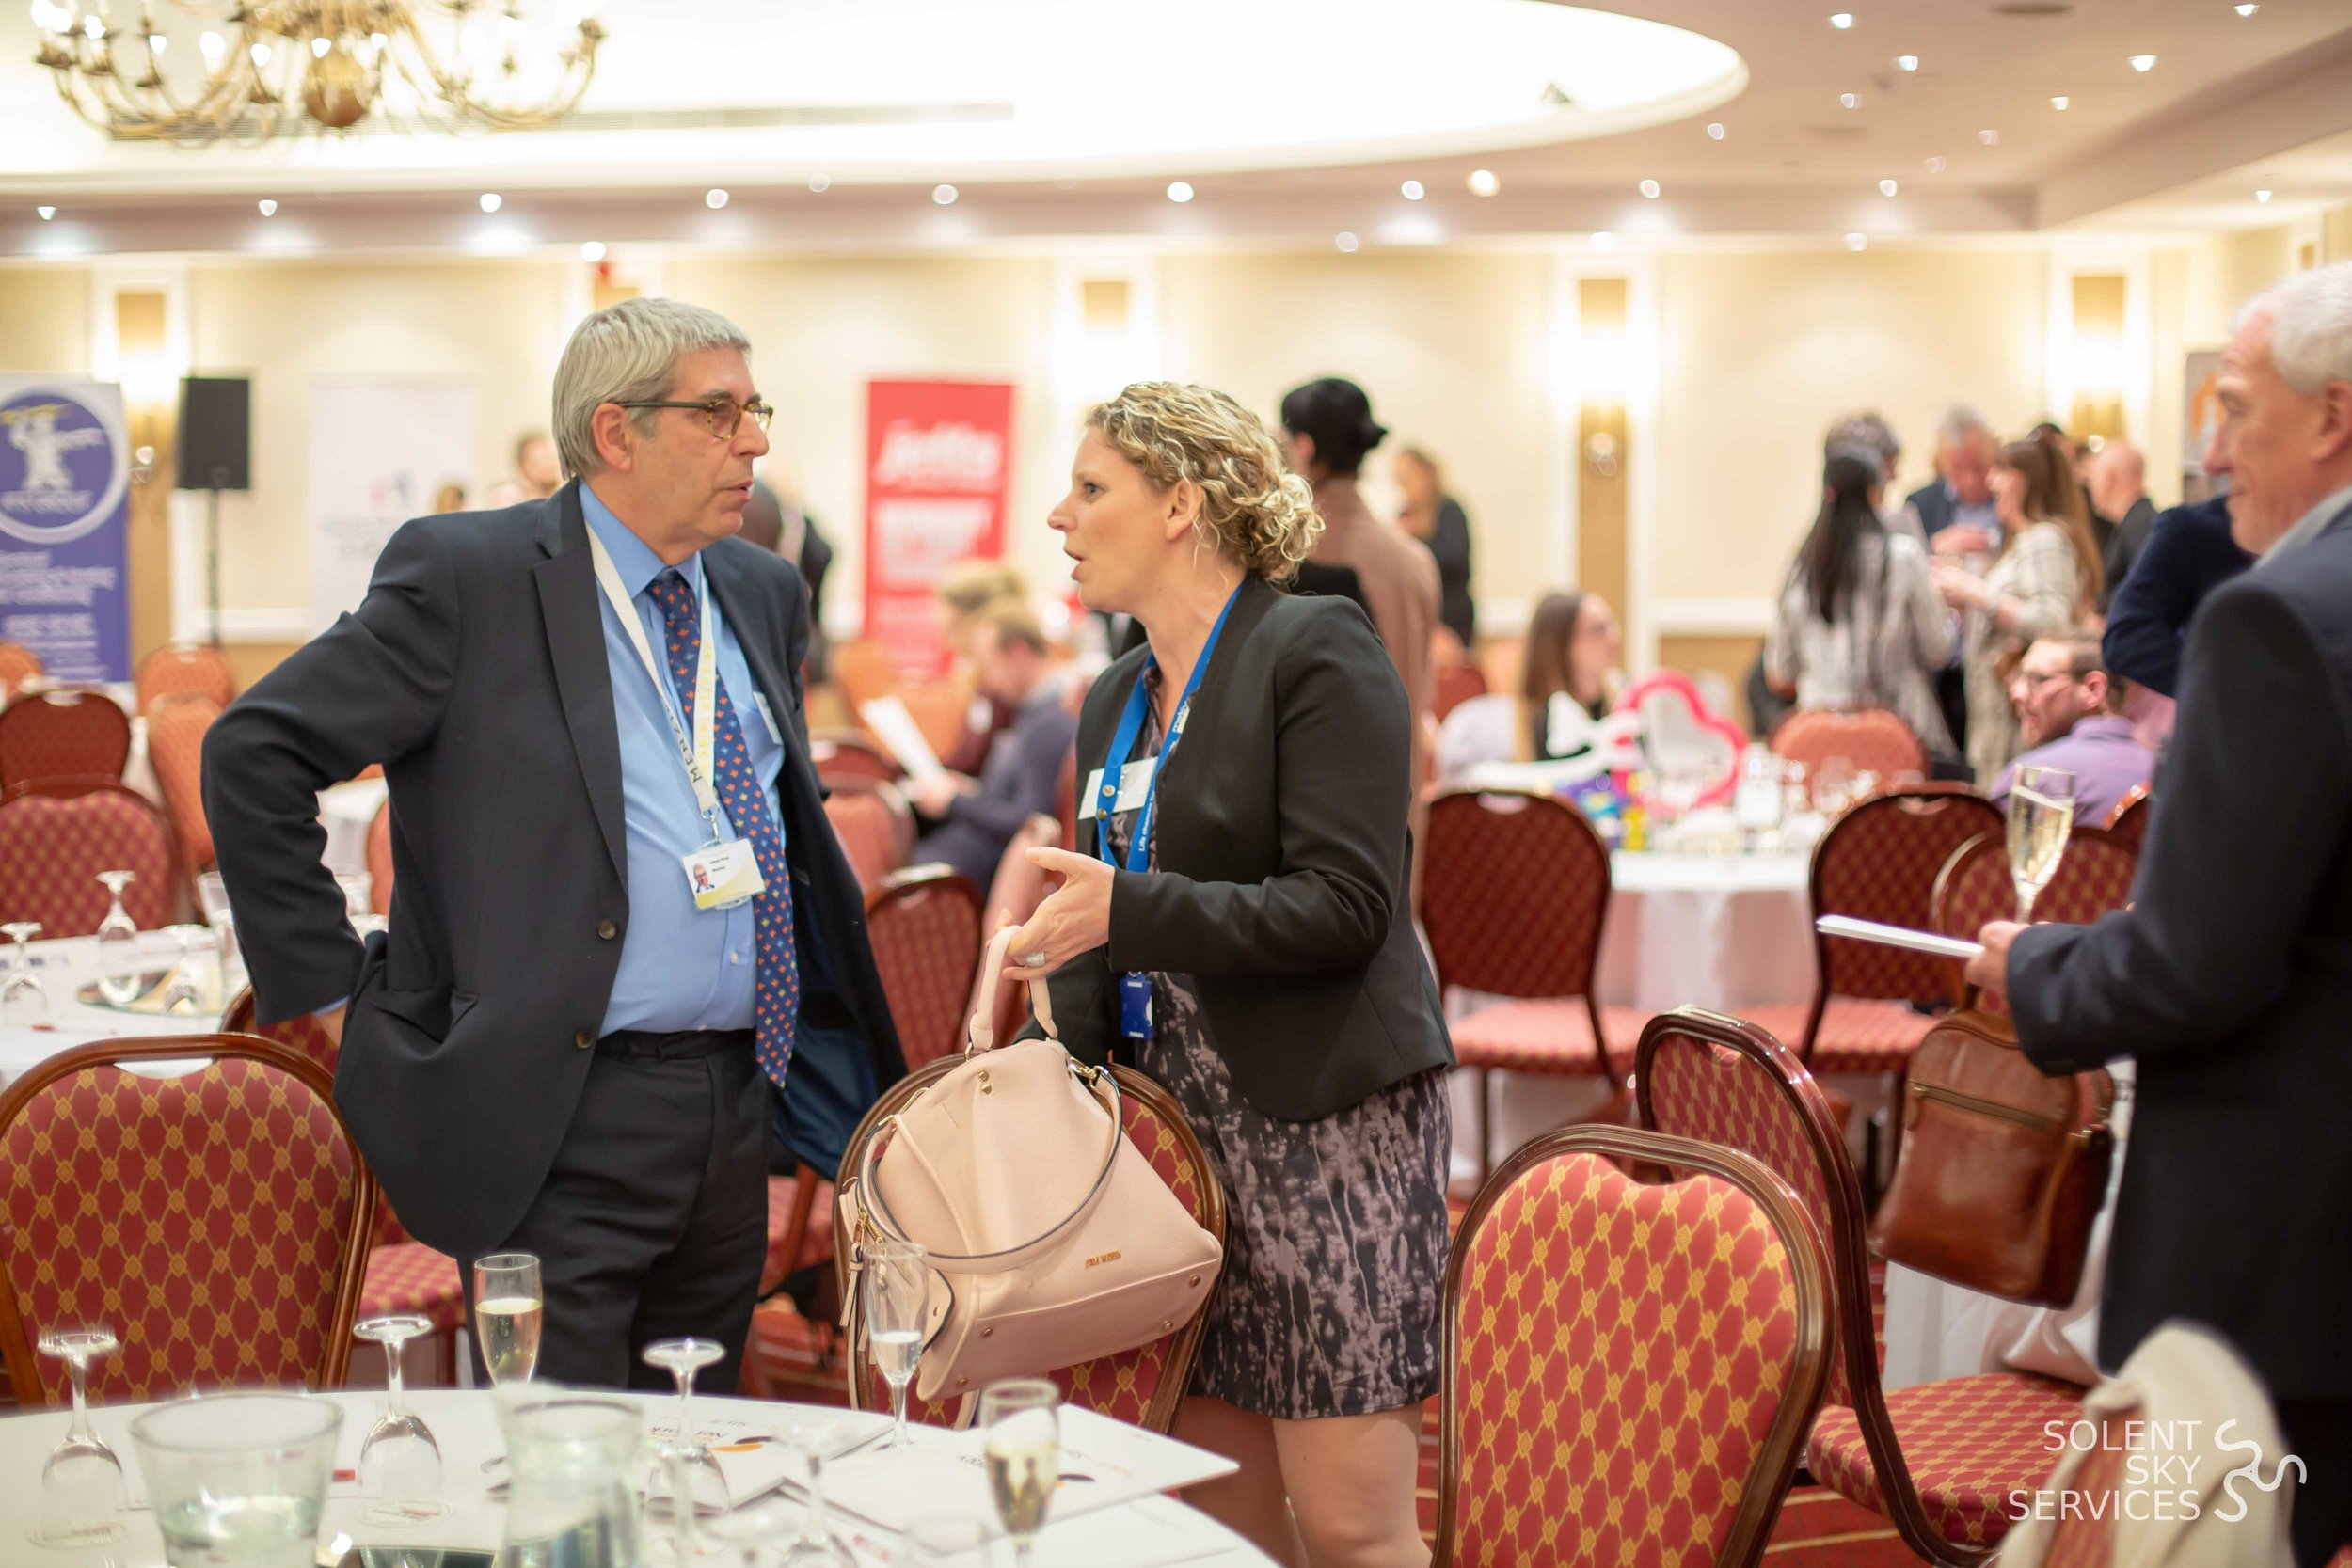 Synergy Success Networking Event #2 - Solent Sky Services-6.JPG